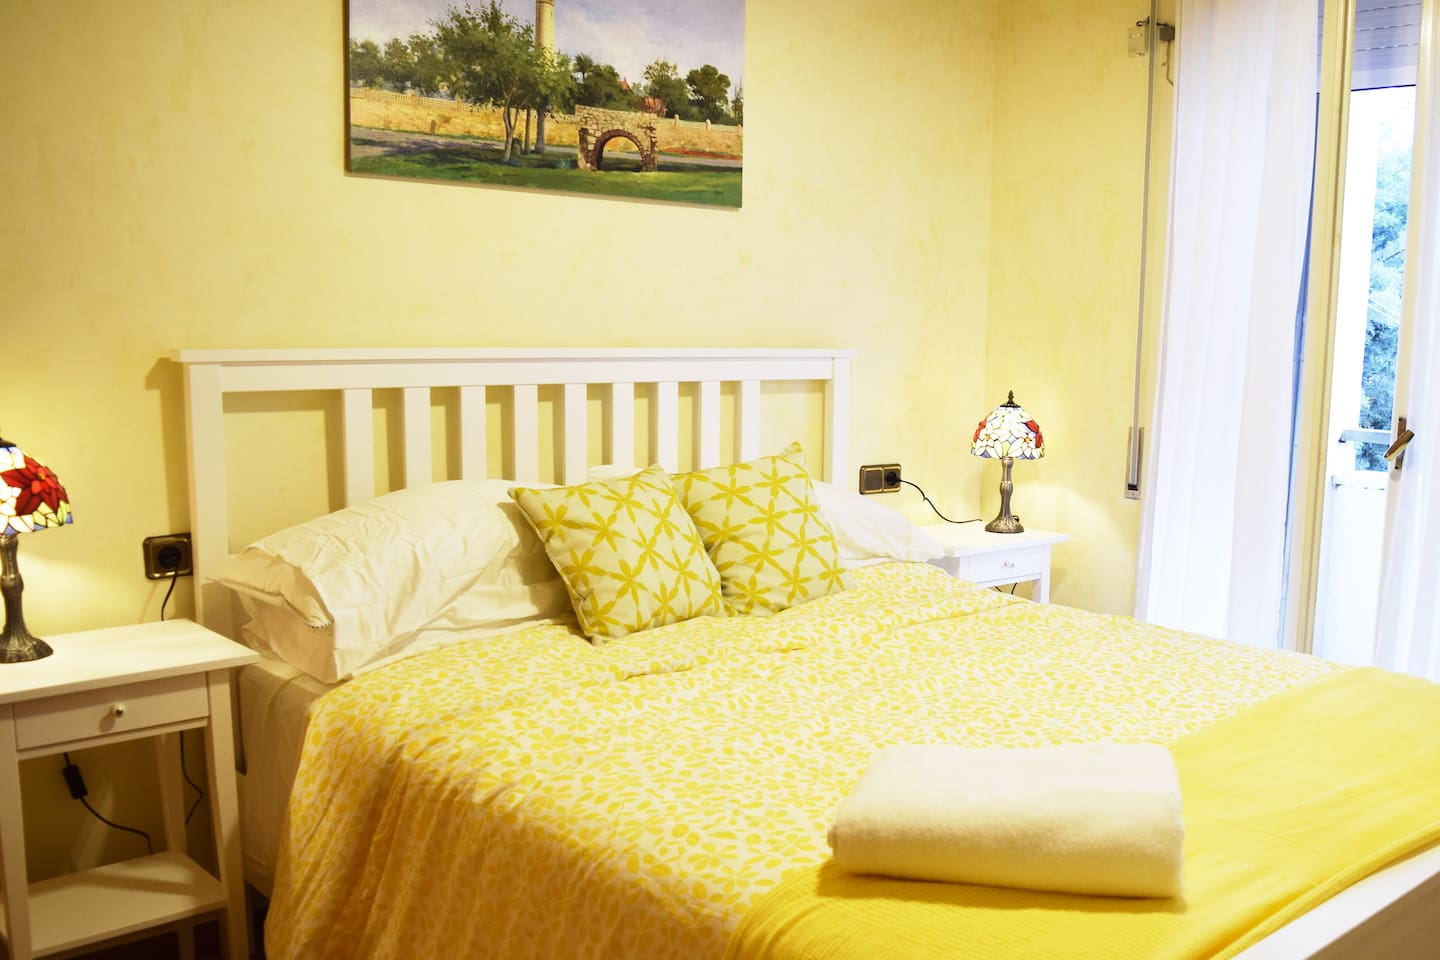 West Queen Room with original painting of the Vilanova lighthouse. Nightstand and tiffany lamp on each side of the bed.  West-facing window opens onto balcony overlooking the quiet private garden. Security blind can be closed for complete black-out.